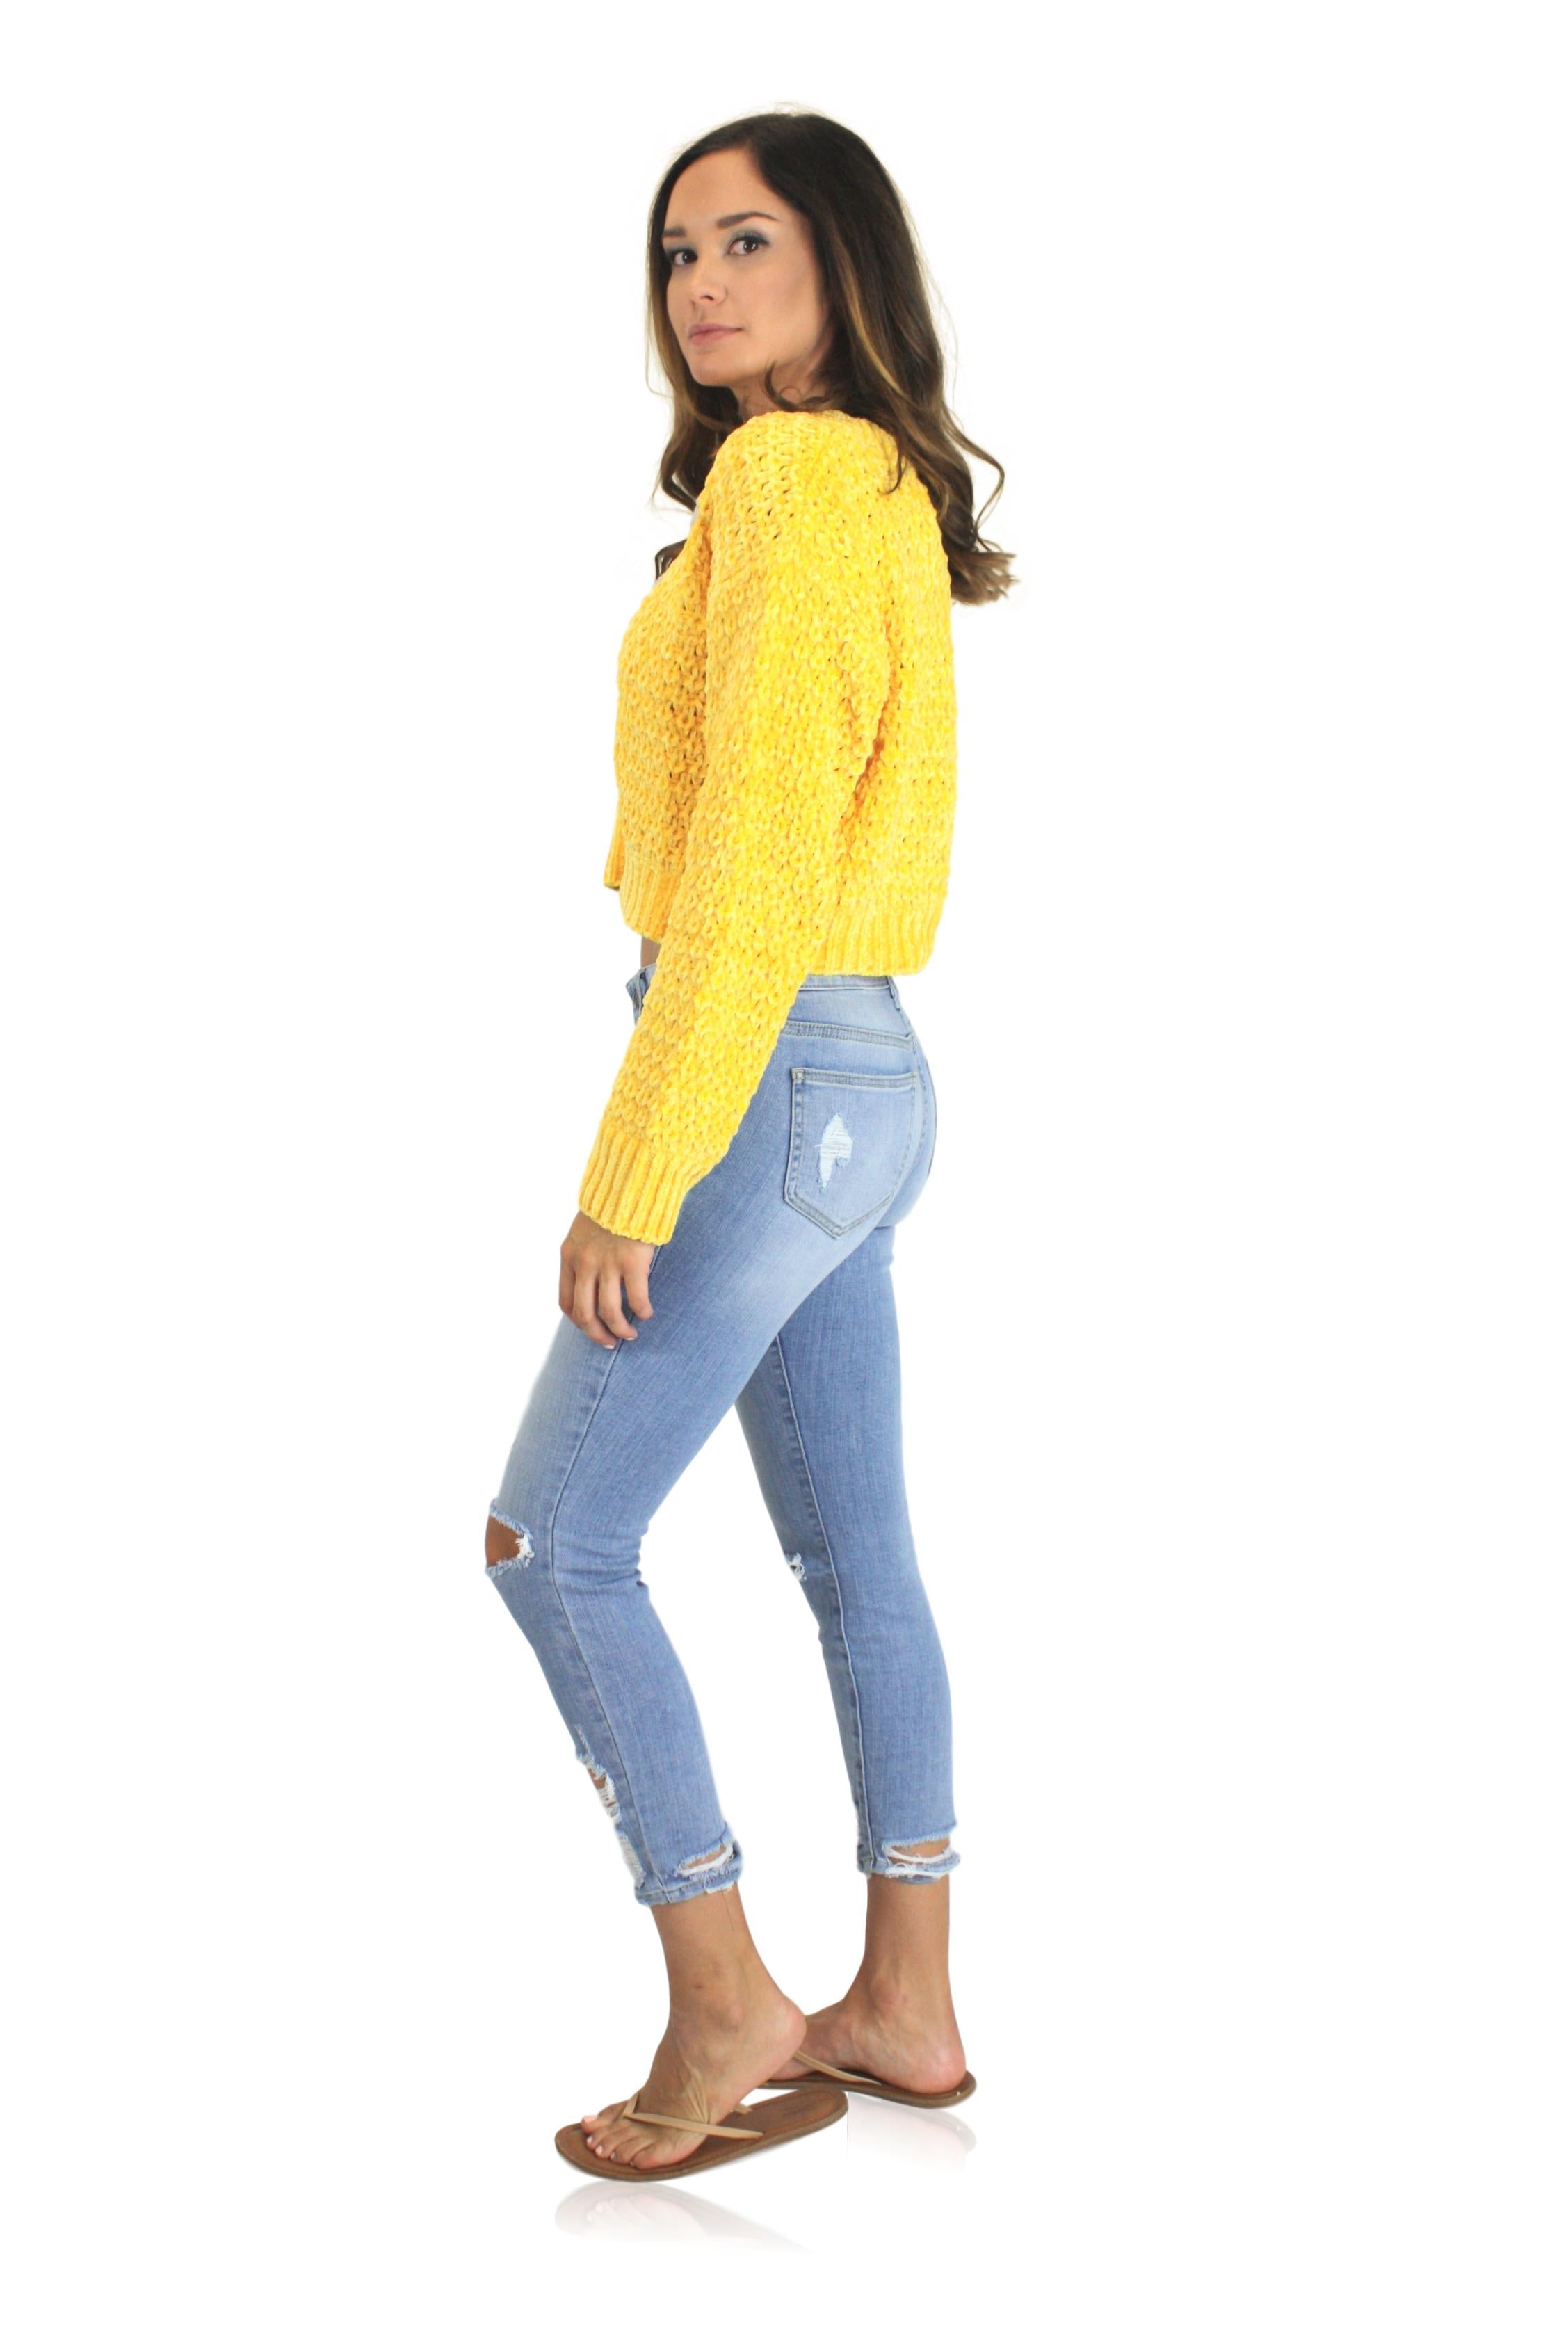 HONEY KNIT SWEATER IN YELLOW